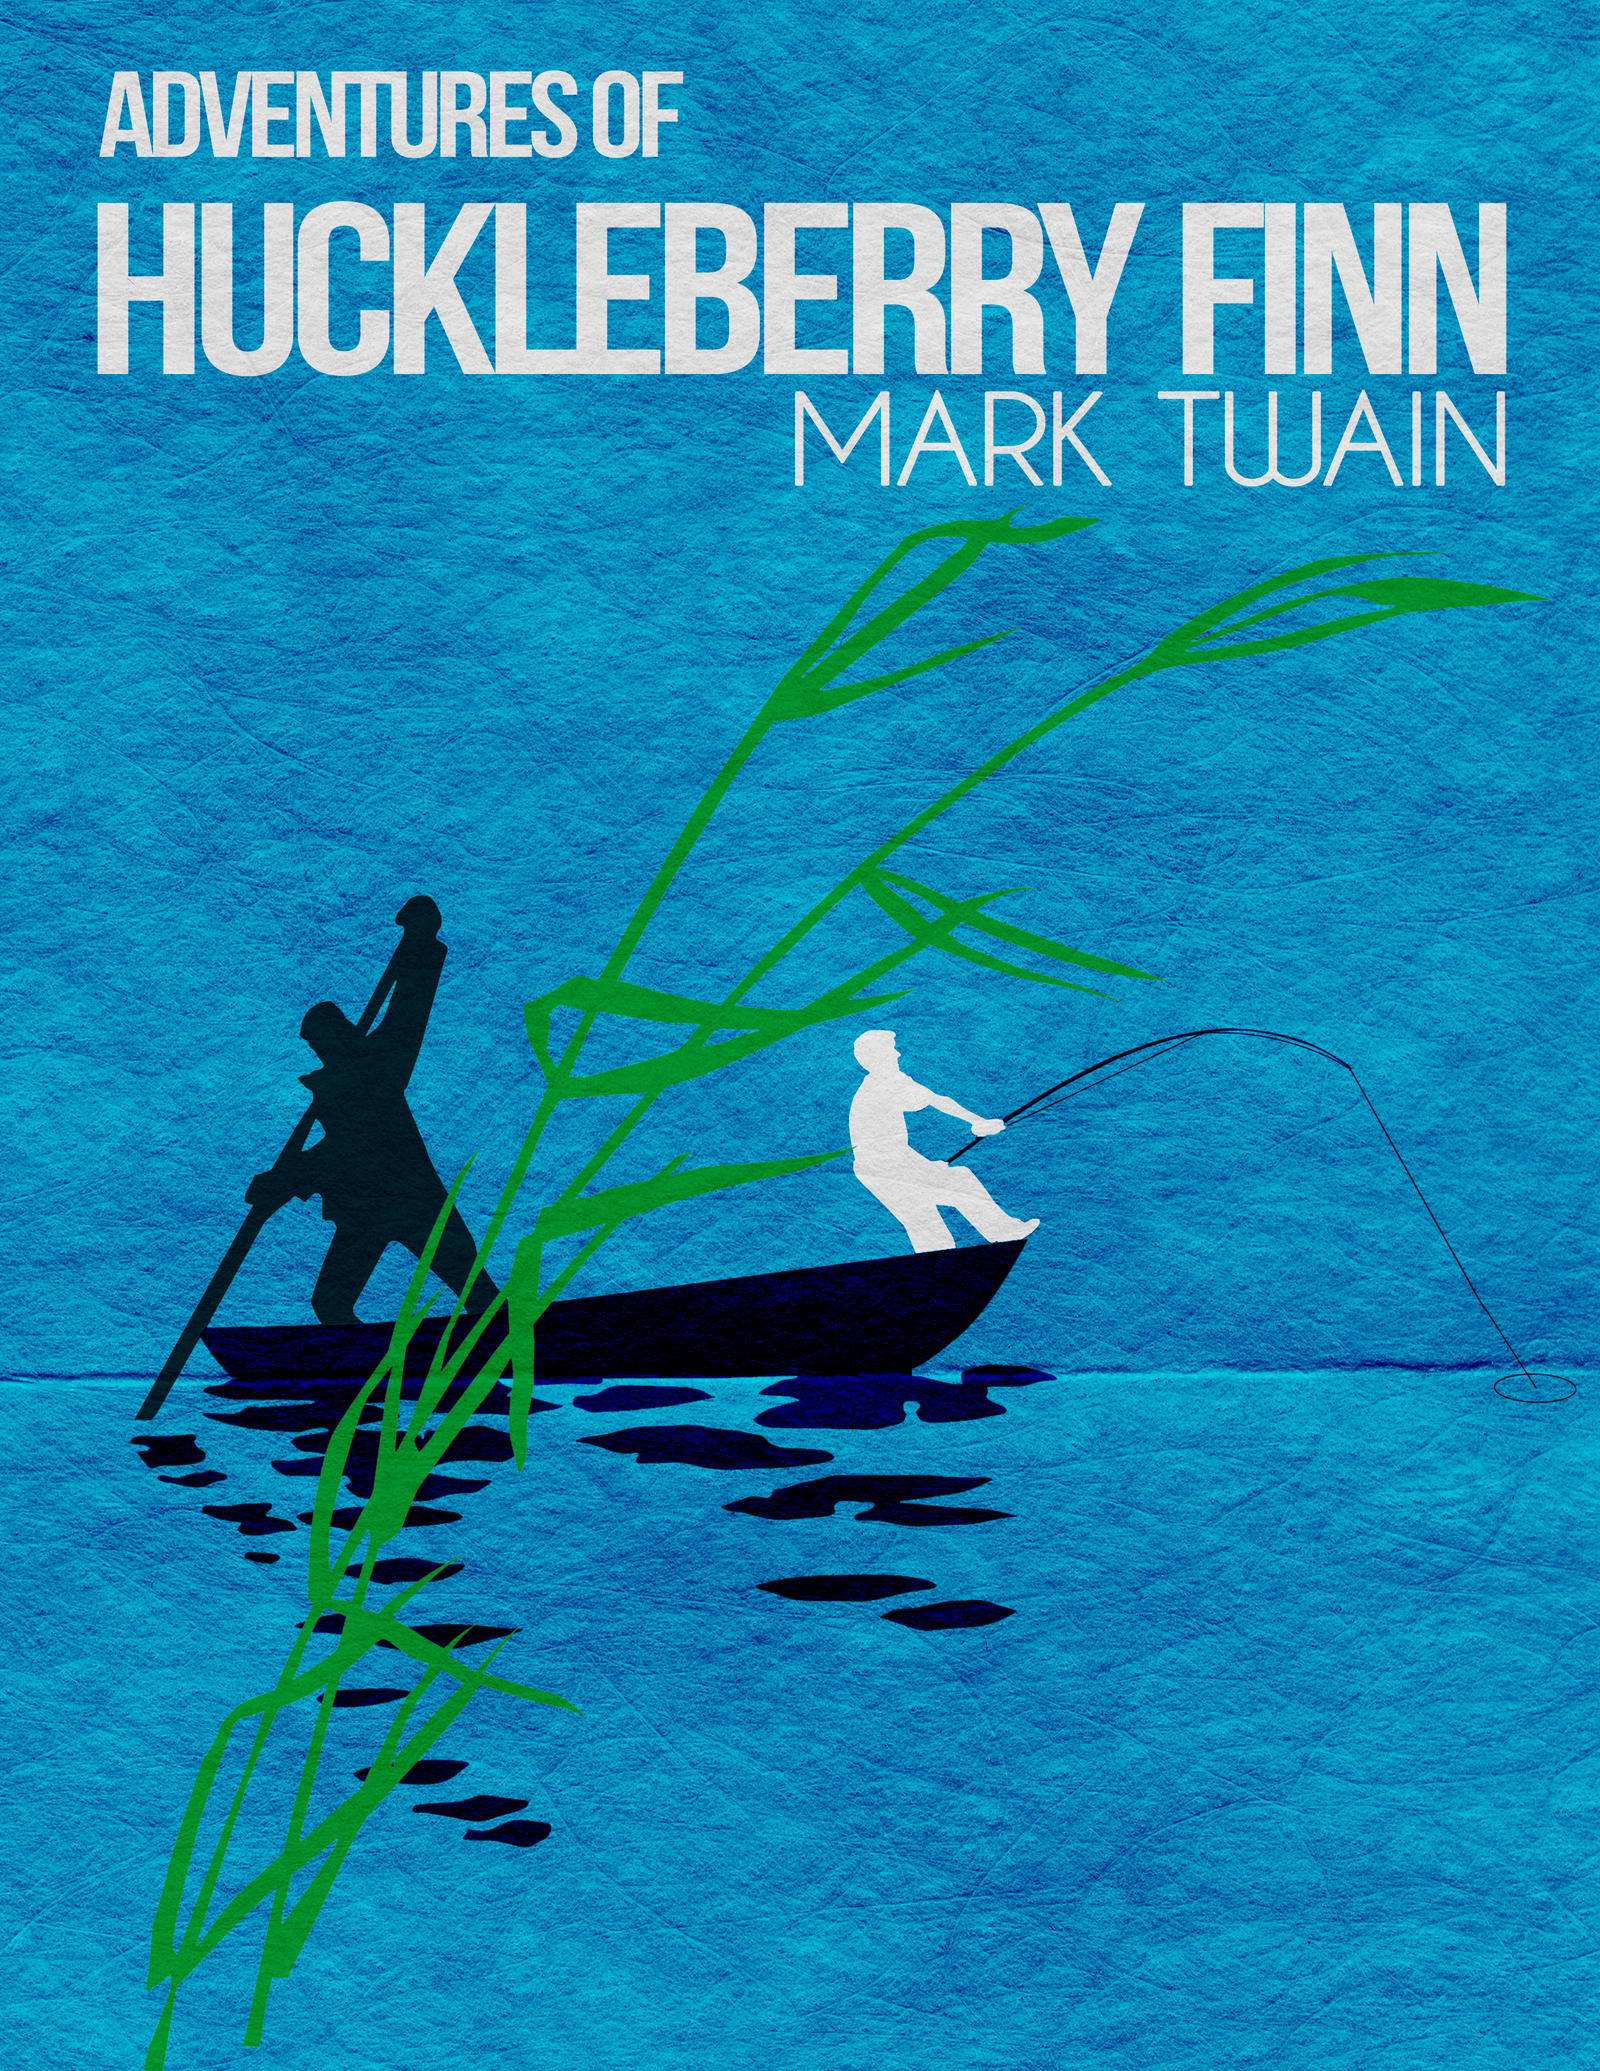 the dysfunctional family of huck finn in the novel adventures of huckleberry finn The adventures of huckleberry finn all modern literature comes from one book by mark twain called huckleberry finn it's the best book so huck finn.